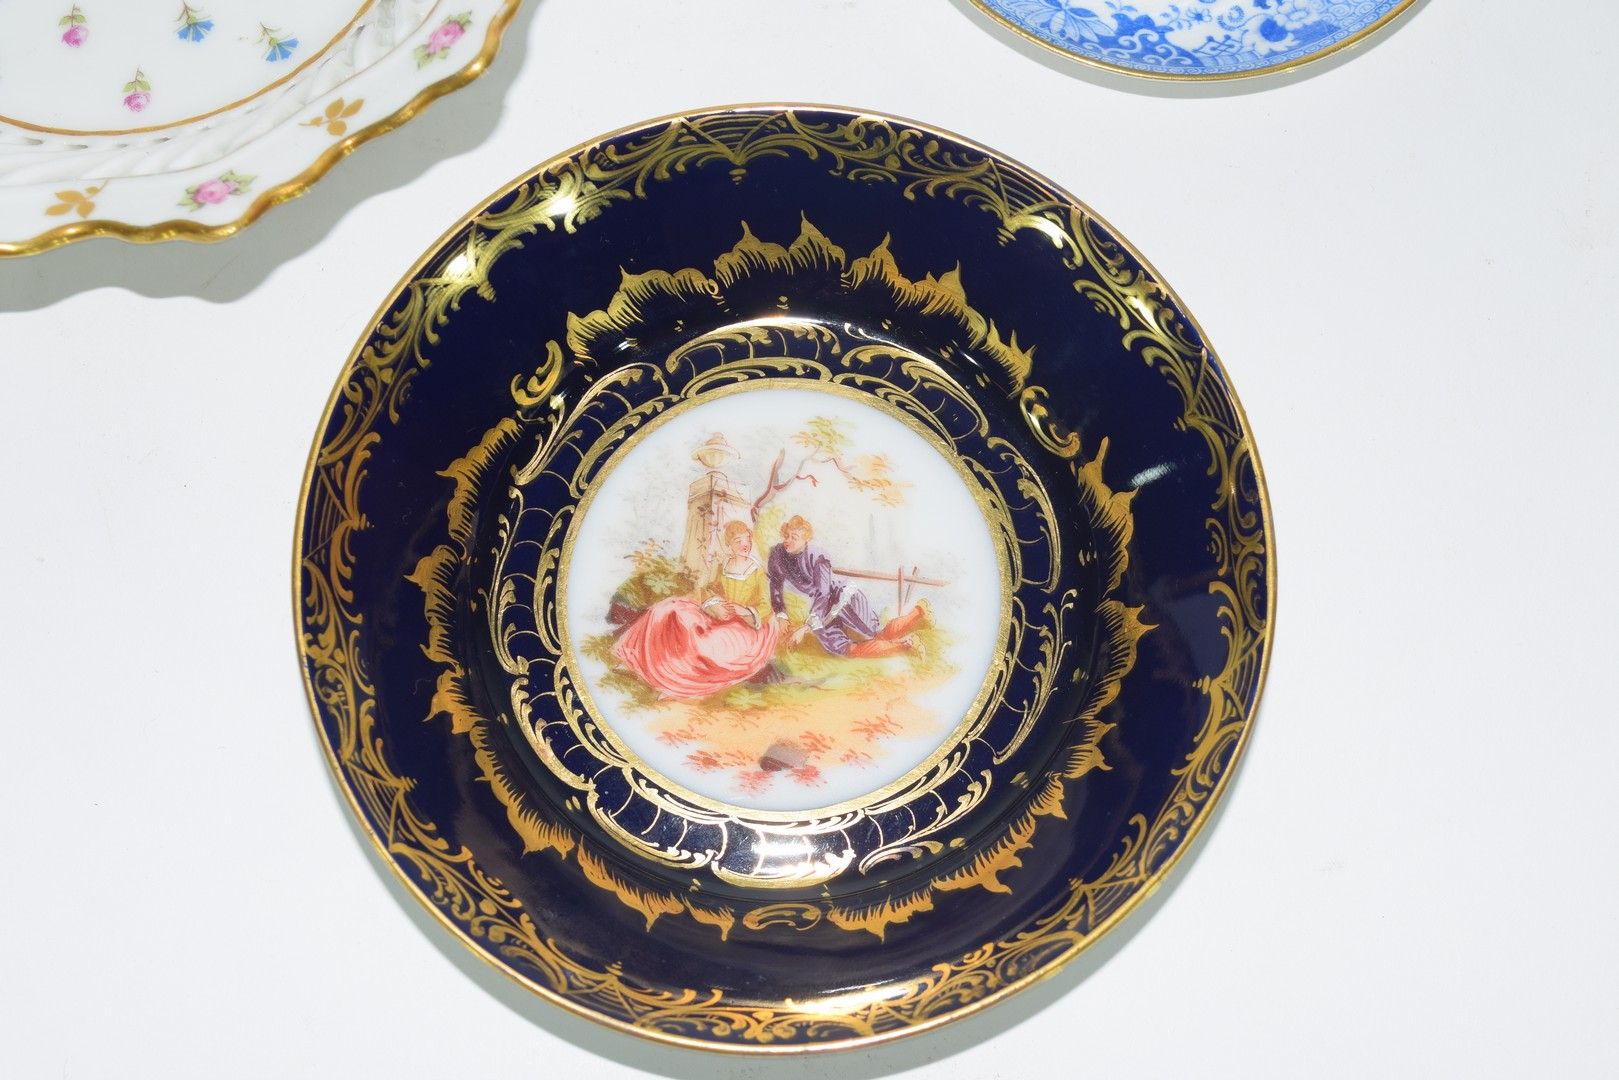 Group of Continental porcelains including a Vienna style cup and saucer - Image 3 of 12